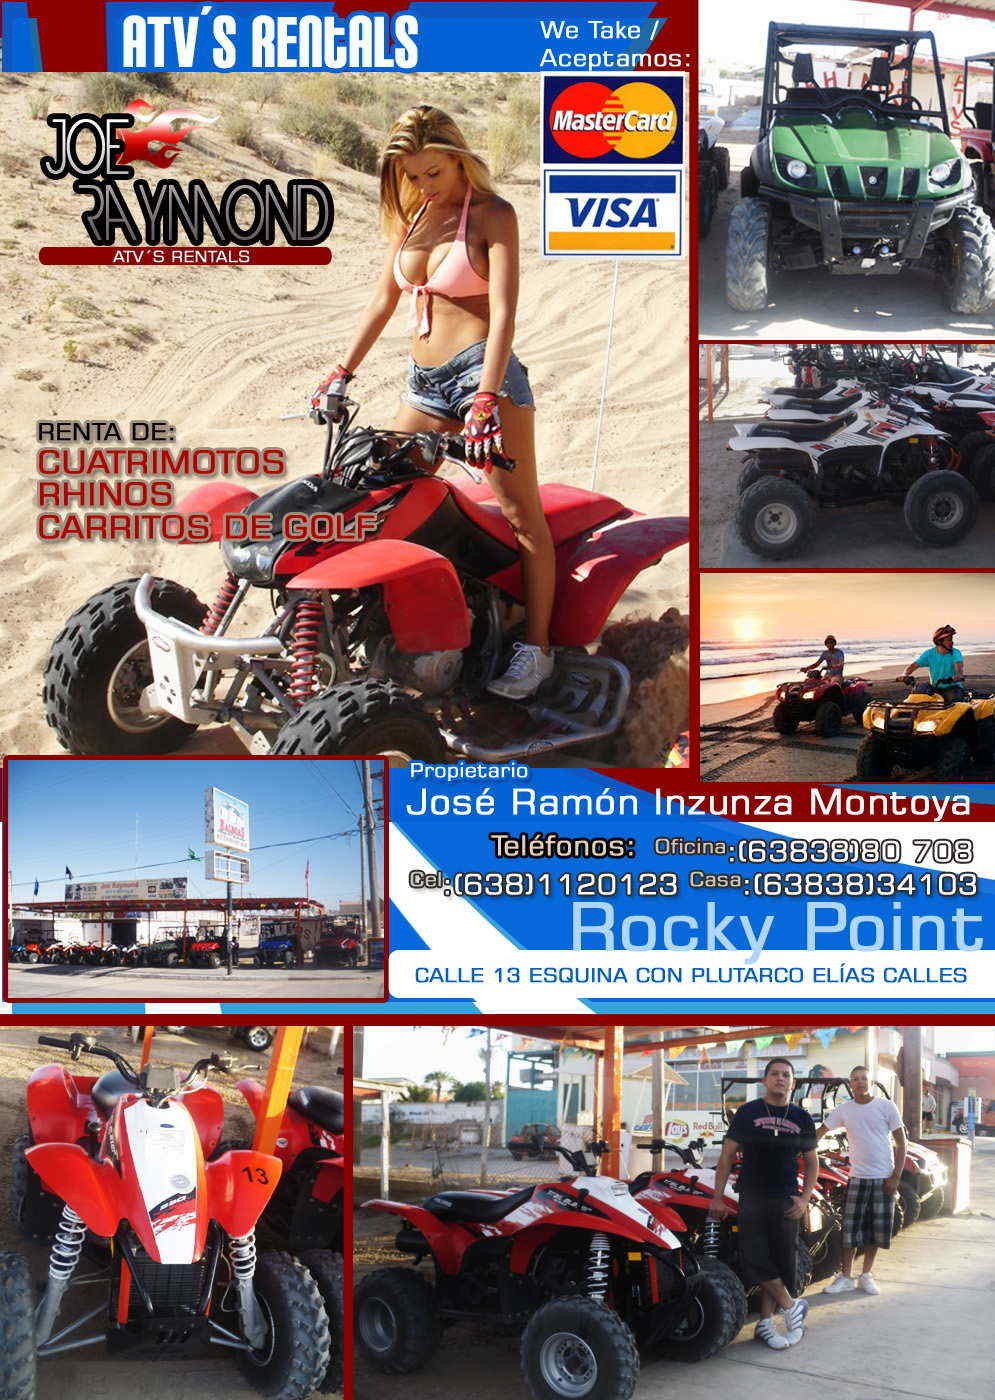 Joe Raymond ATV´S-RENTA DE CUATRIMOTOS RHINOS CARRITOS DE GOLF